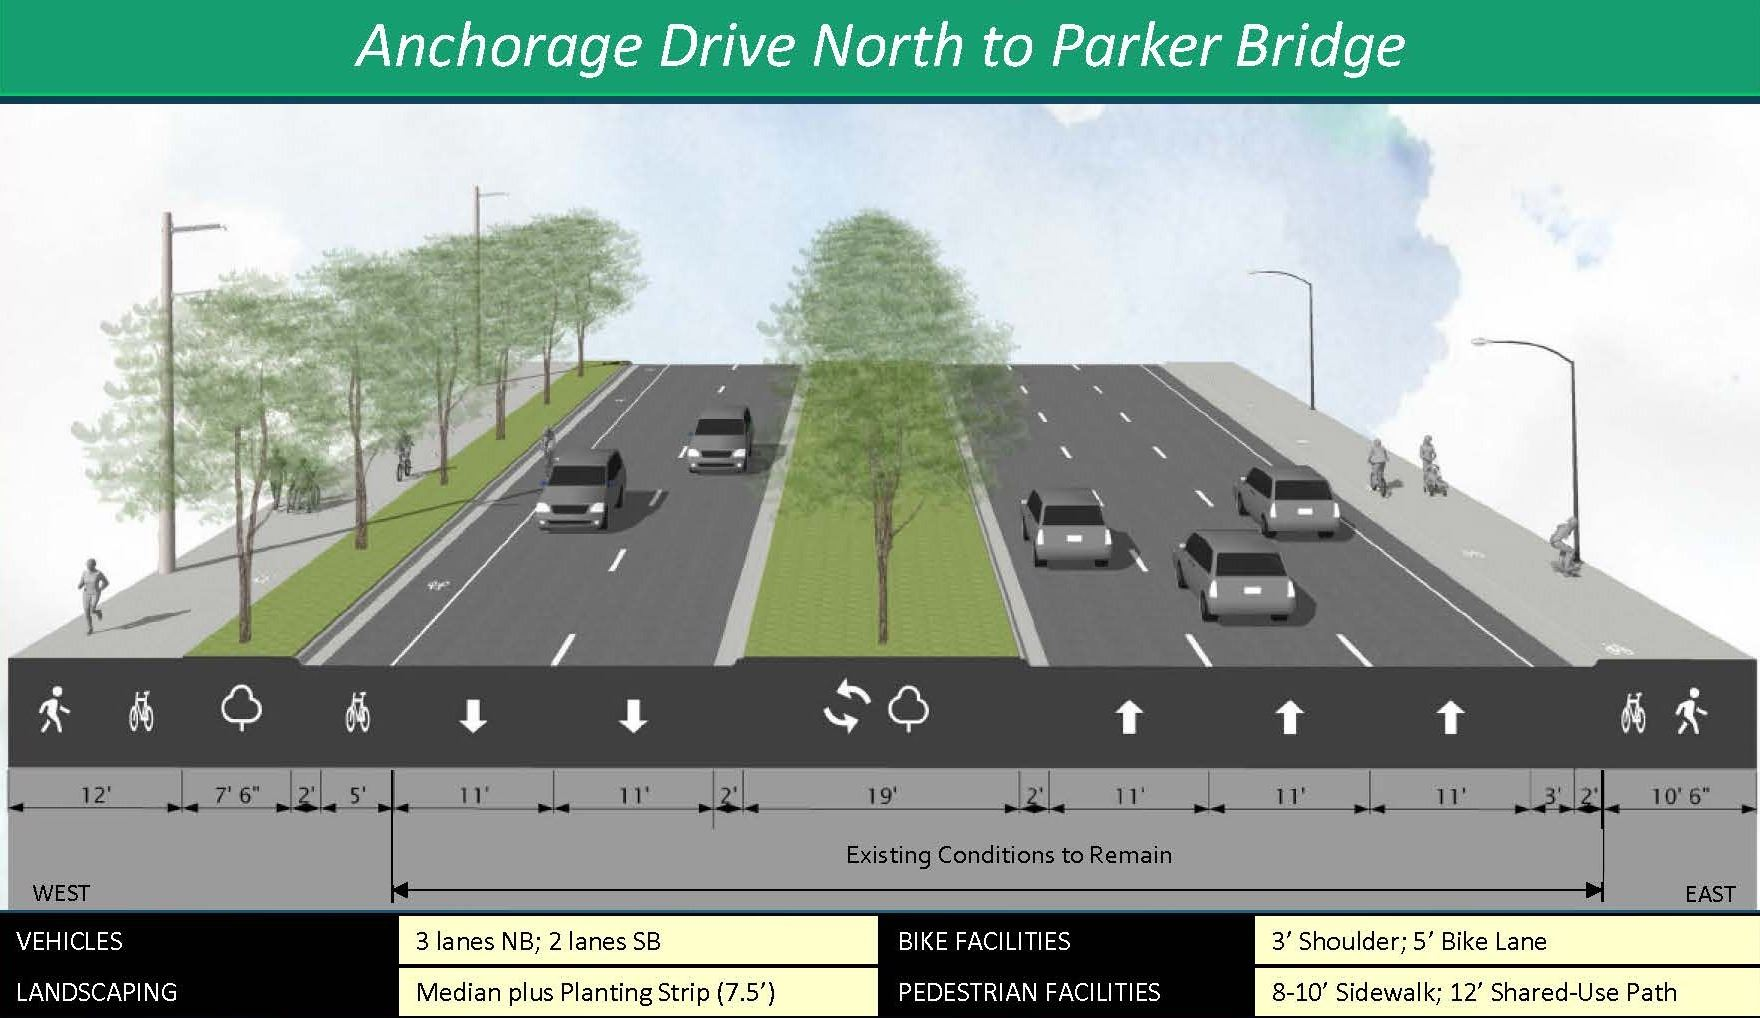 Cross section rendering of Anchorage Drive North to Parker Bridge